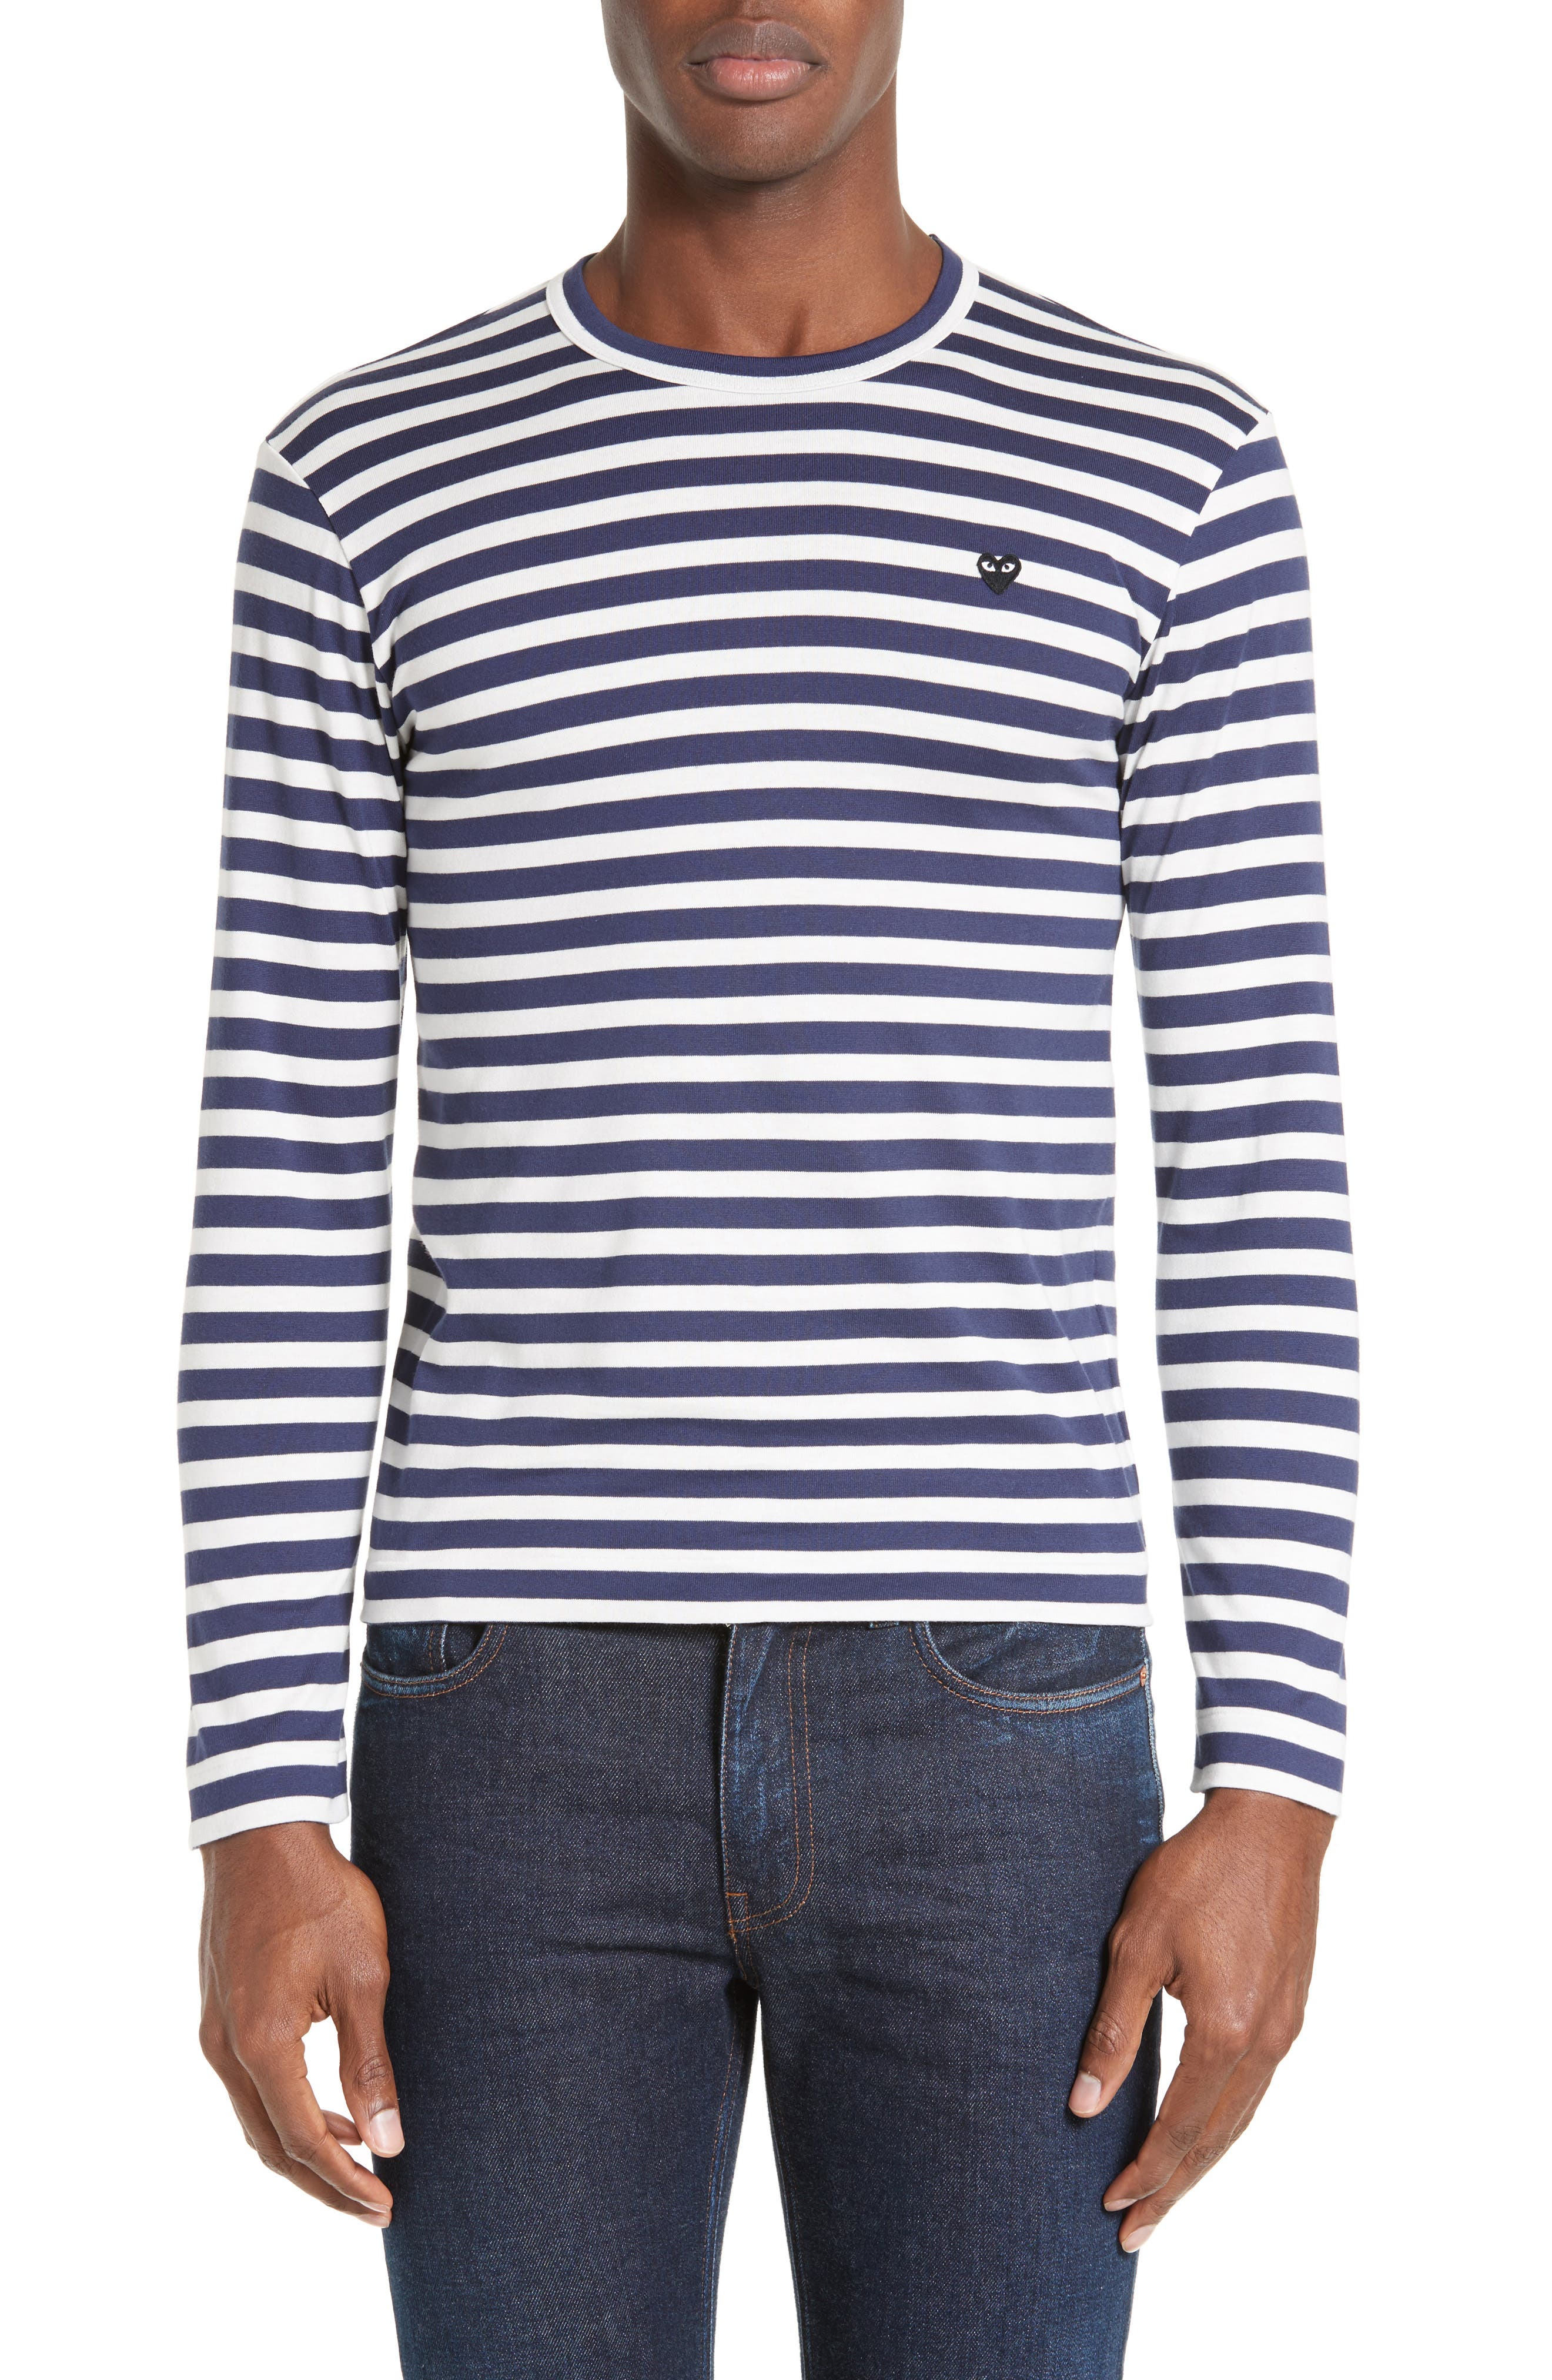 PLAY Stripe T-Shirt,                         Main,                         color, Navy/ White